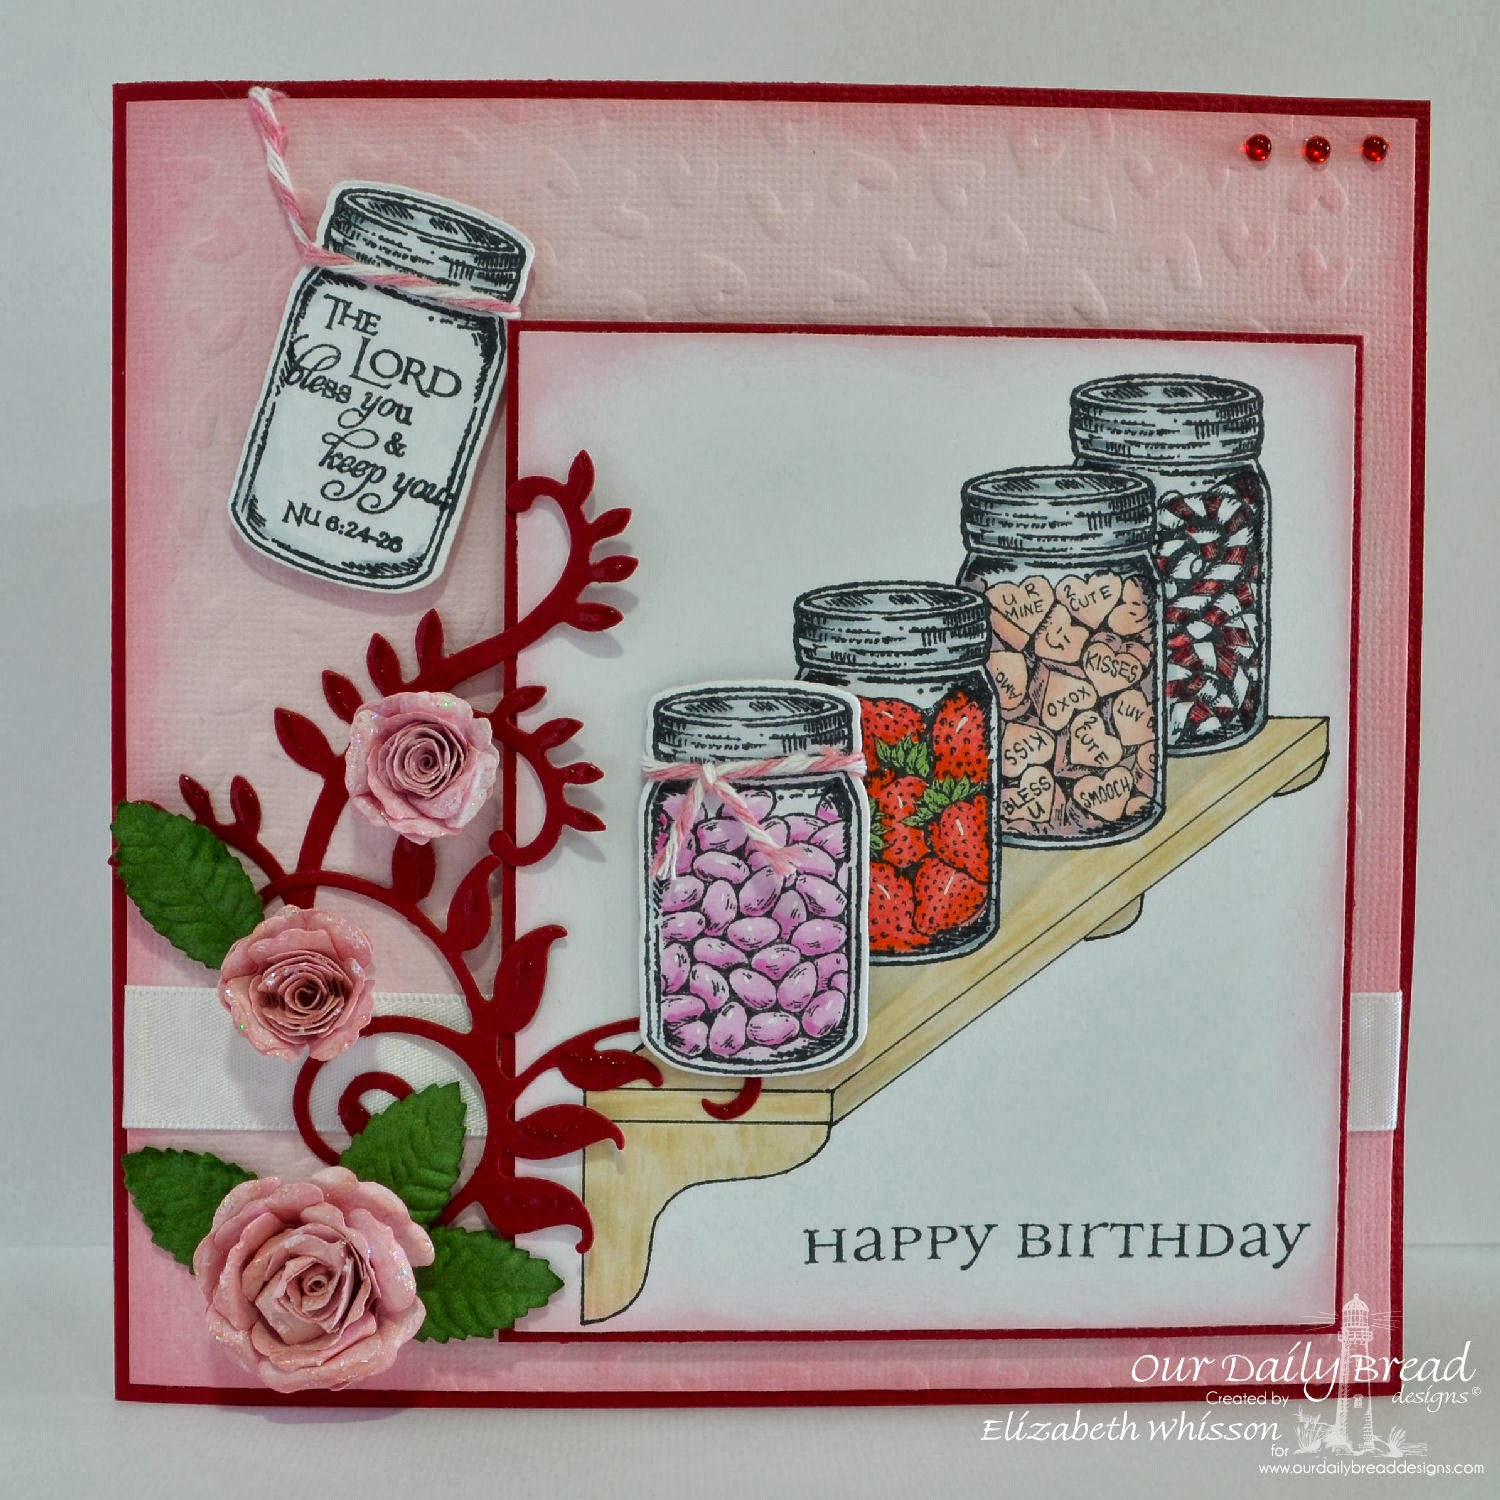 Elizabeth Whisson, Our Daily Bread Designs, Canning Jars, Canning Jar Fillers, Scripture Bookmarks, Spellbinders Bitty Blossoms